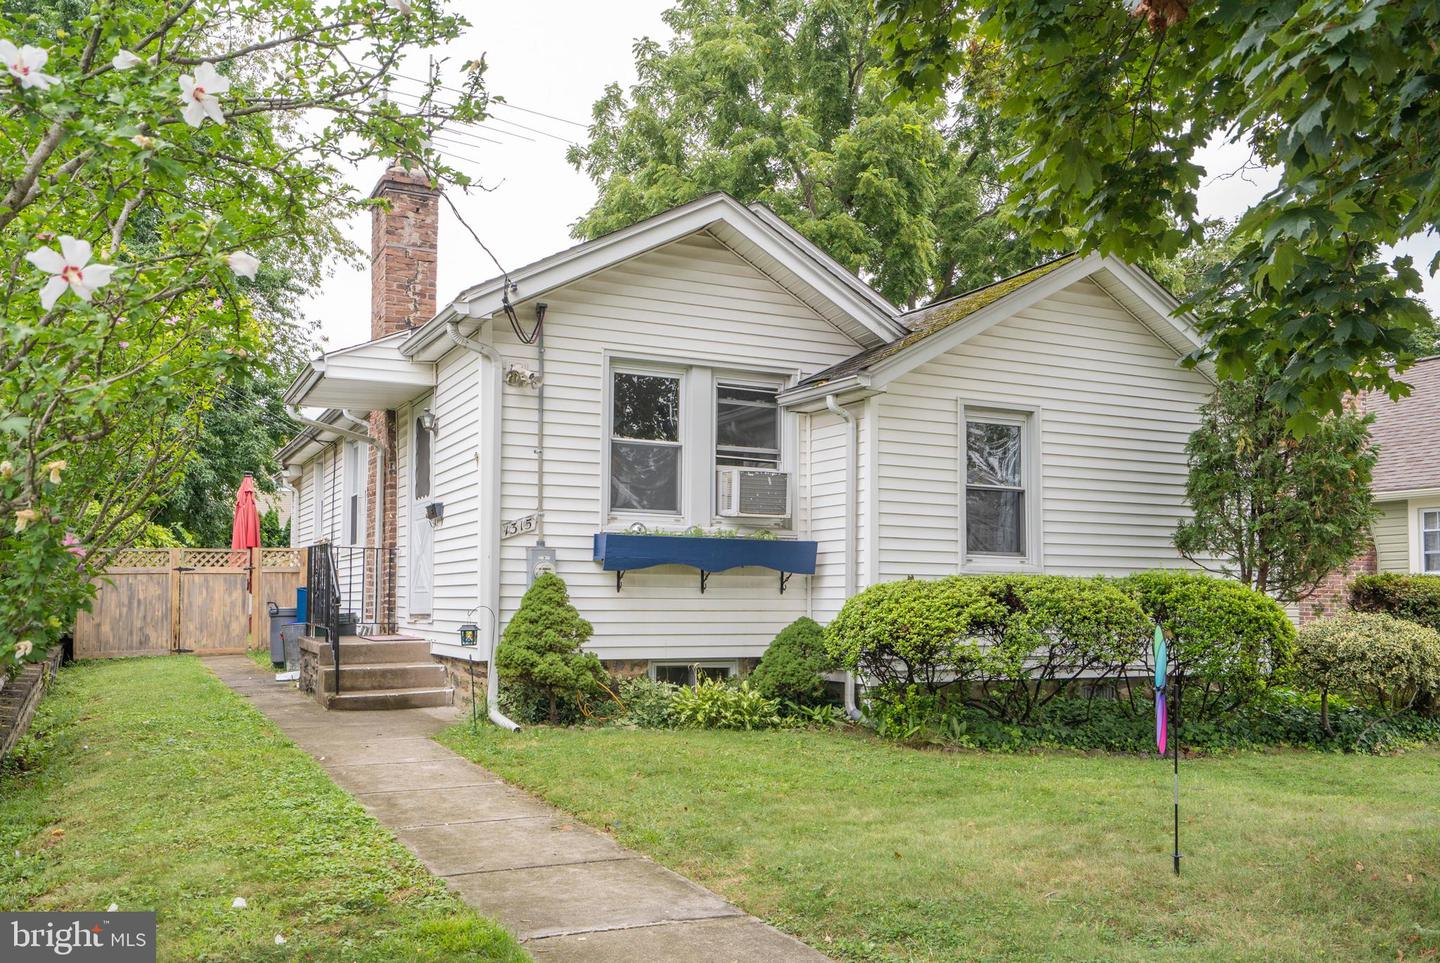 1315 Maryland Avenue Havertown, PA 19083